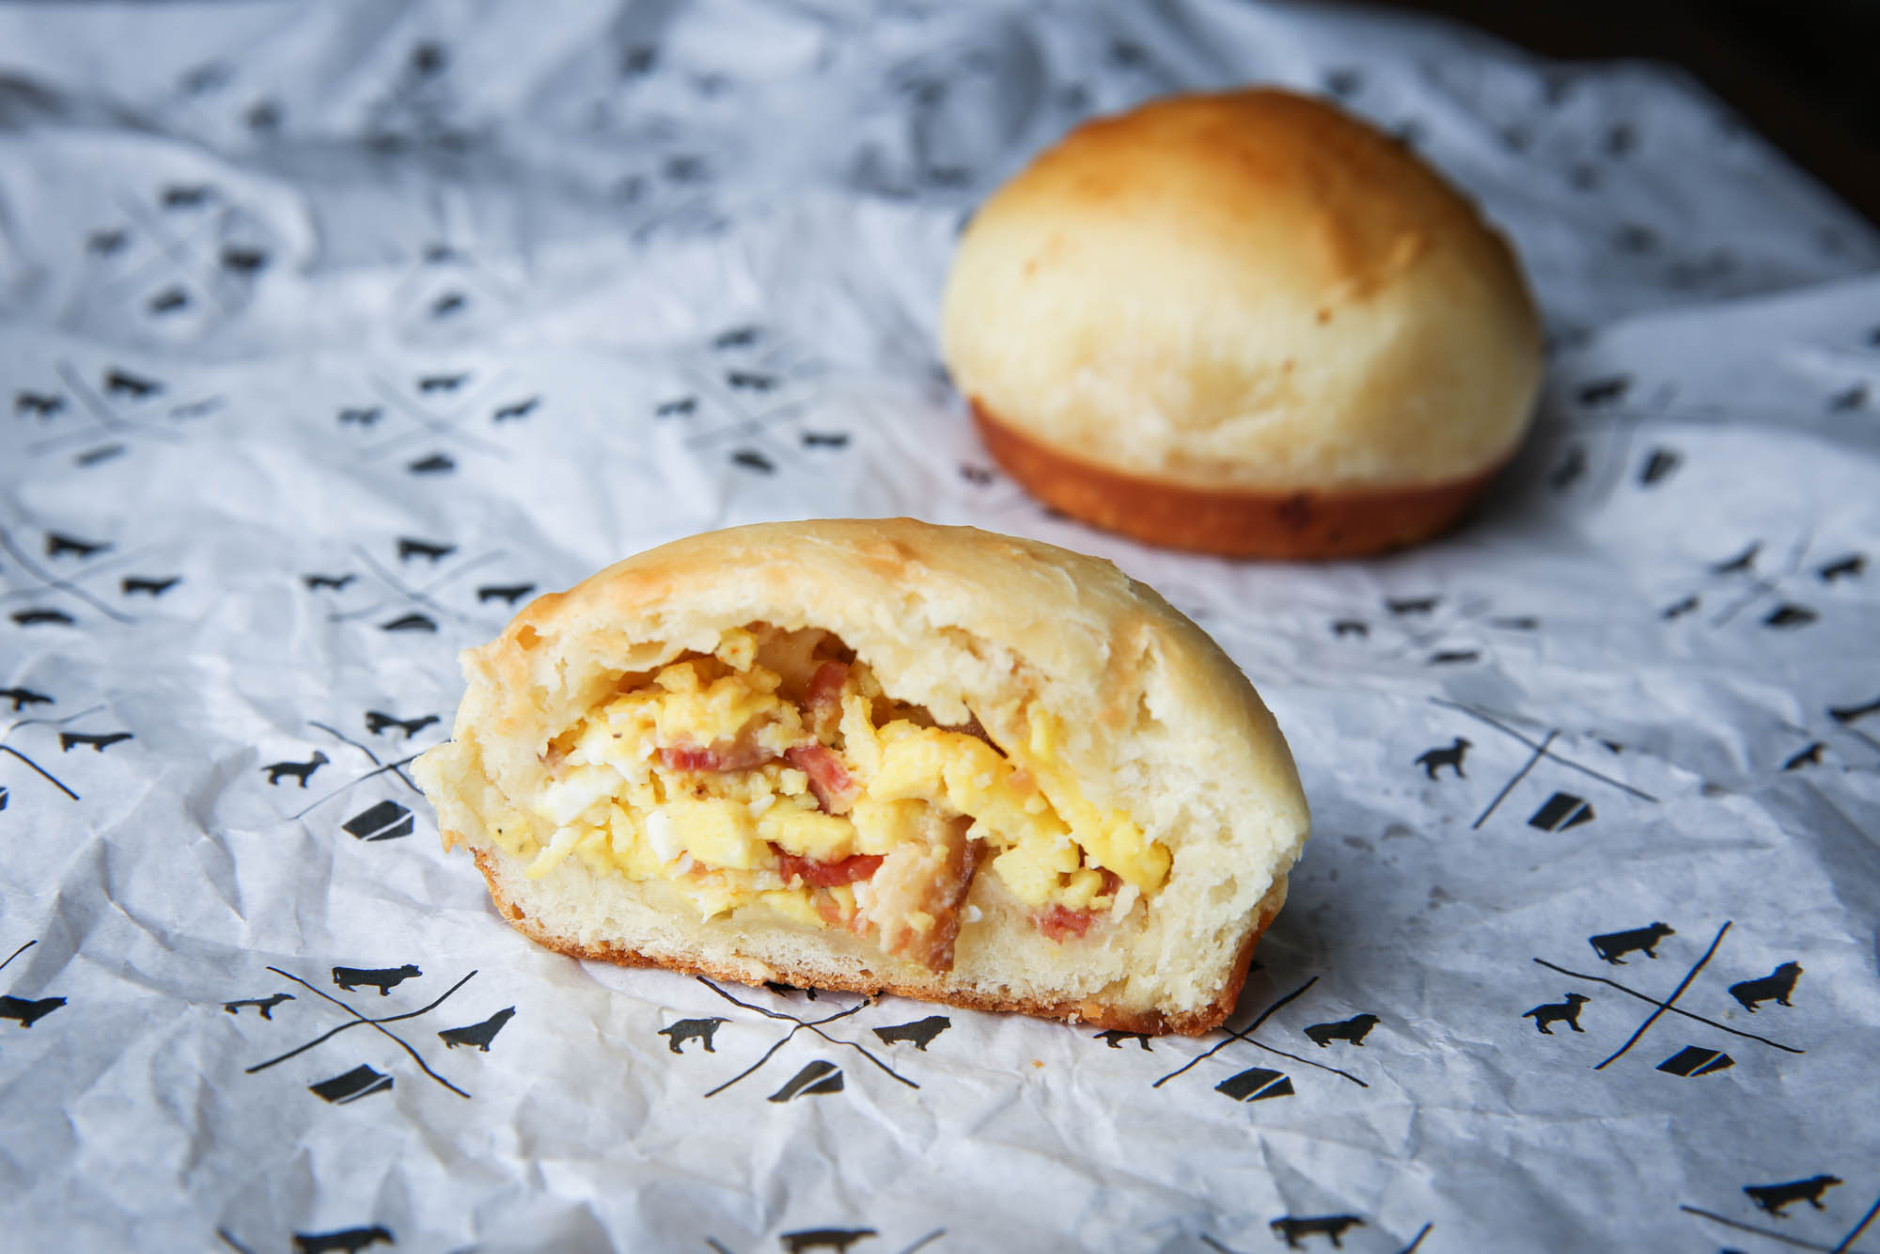 Kolaches have gone through a bit of an evolution in the South. Now, it's common to see them stuffed with meats, cheeses, potatoes and more. (Courtesy Republic Kolache Co.)